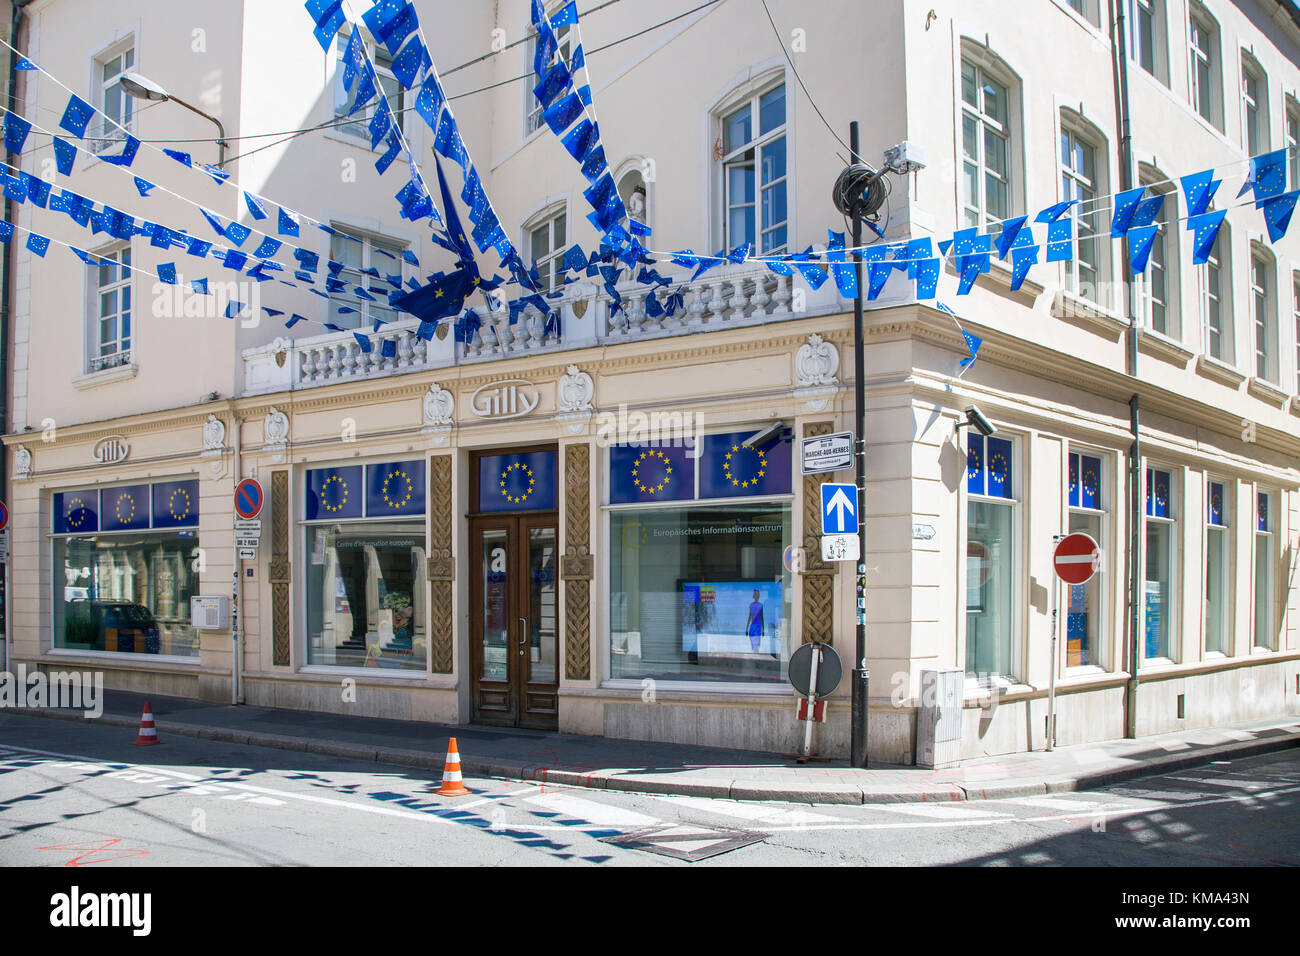 European Information center at Marche-Aux-herbes, Krautmaart, Luxembourg-city, Luxembourg, Europe - Stock Image